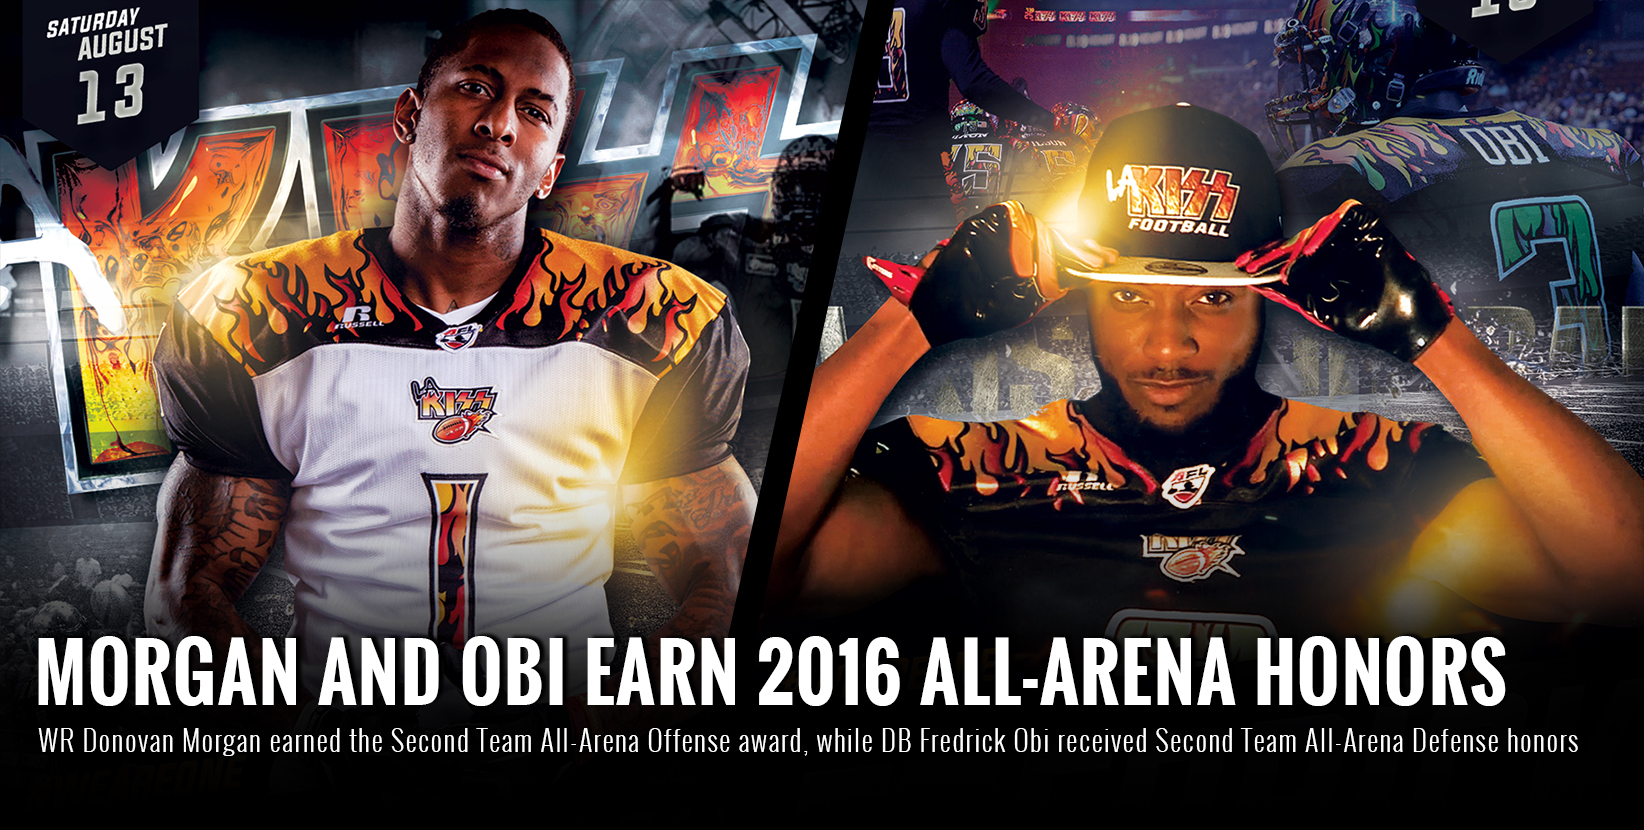 Morgan and Obi Earn 2016 All-Arena Honors